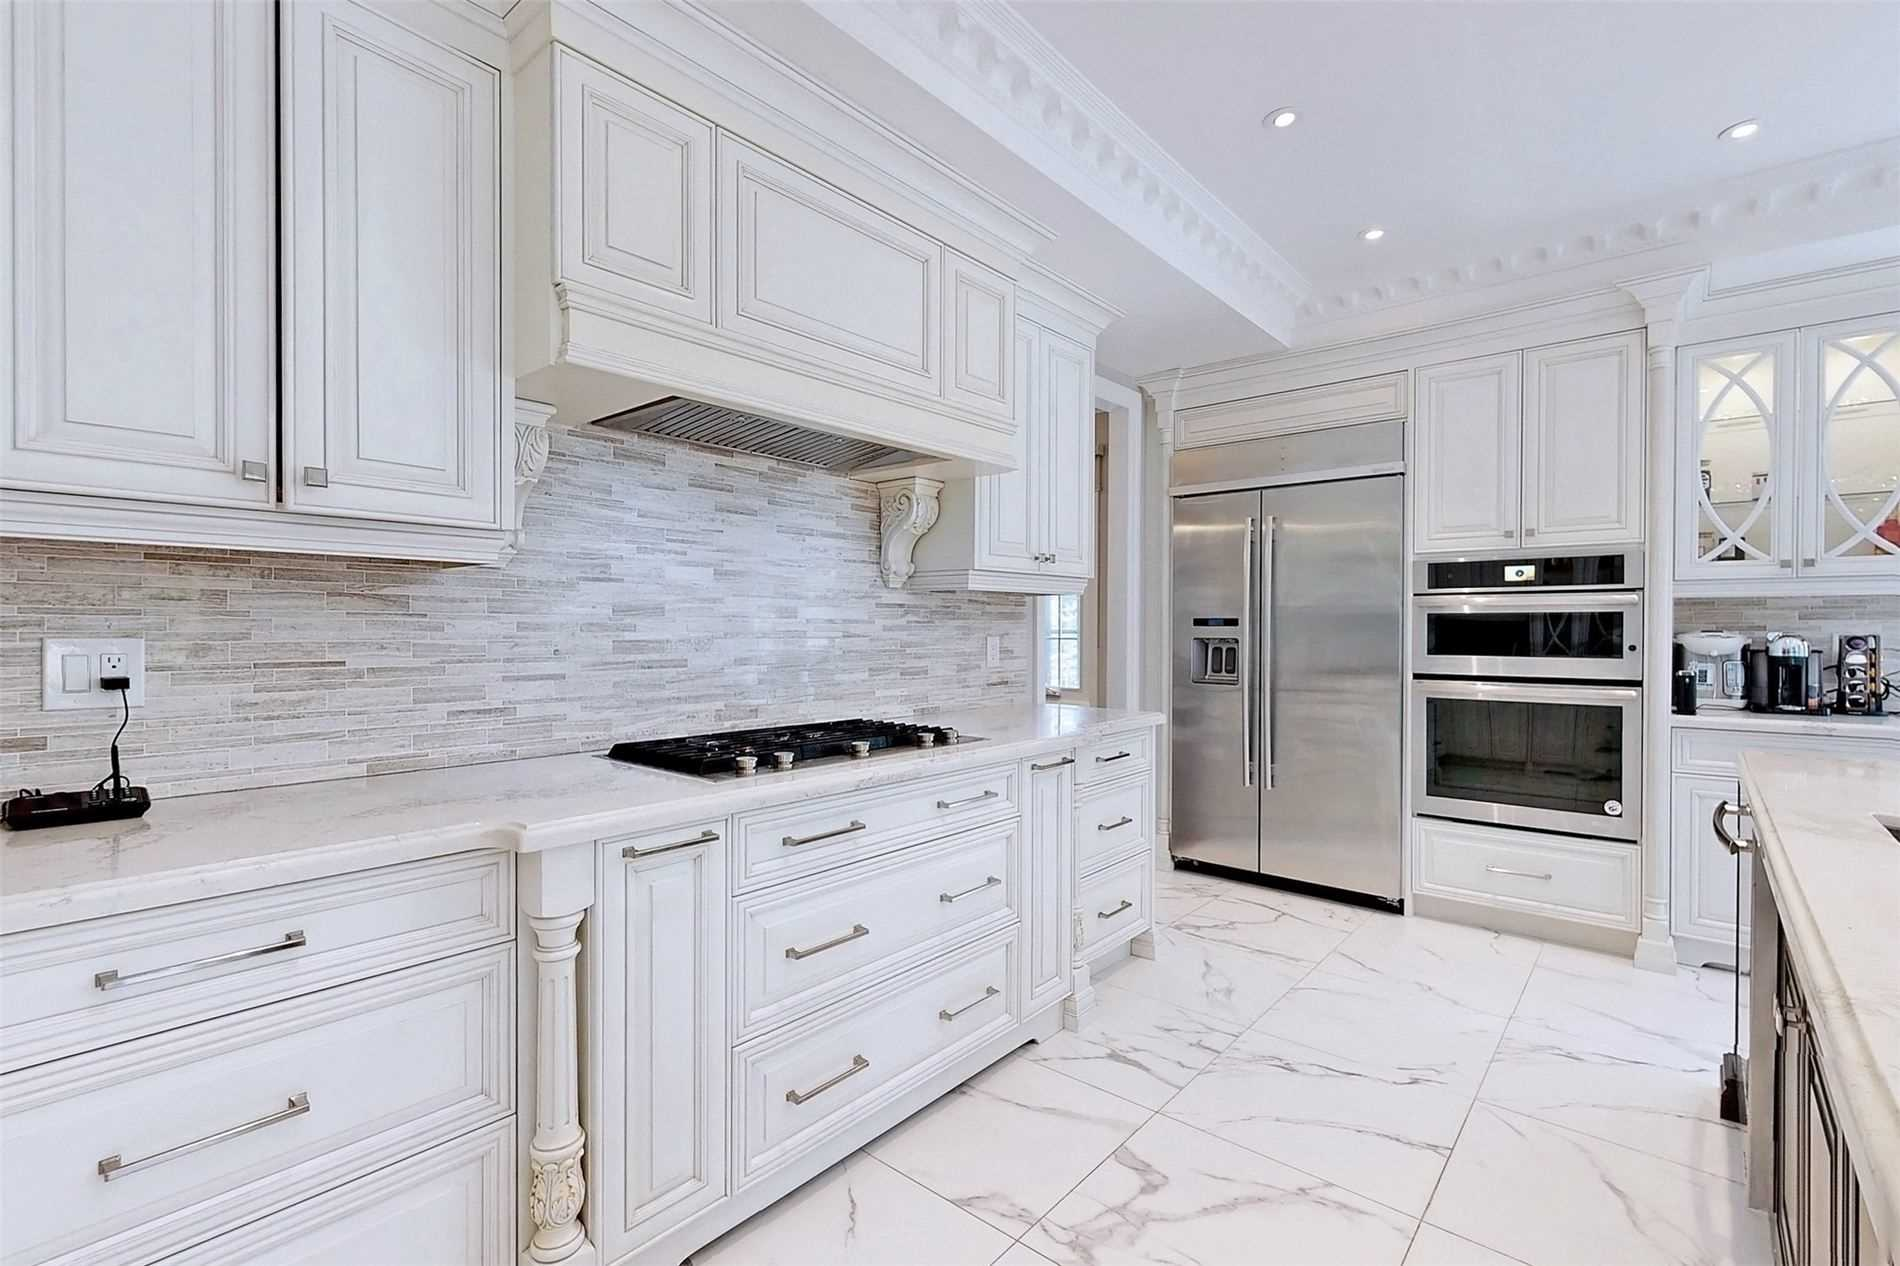 Detached house For Sale In Whitchurch-Stouffville - 46 Sherrick Dr, Whitchurch-Stouffville, Ontario, Canada L4A2E9 , 5 Bedrooms Bedrooms, ,6 BathroomsBathrooms,Detached,For Sale,Sherrick